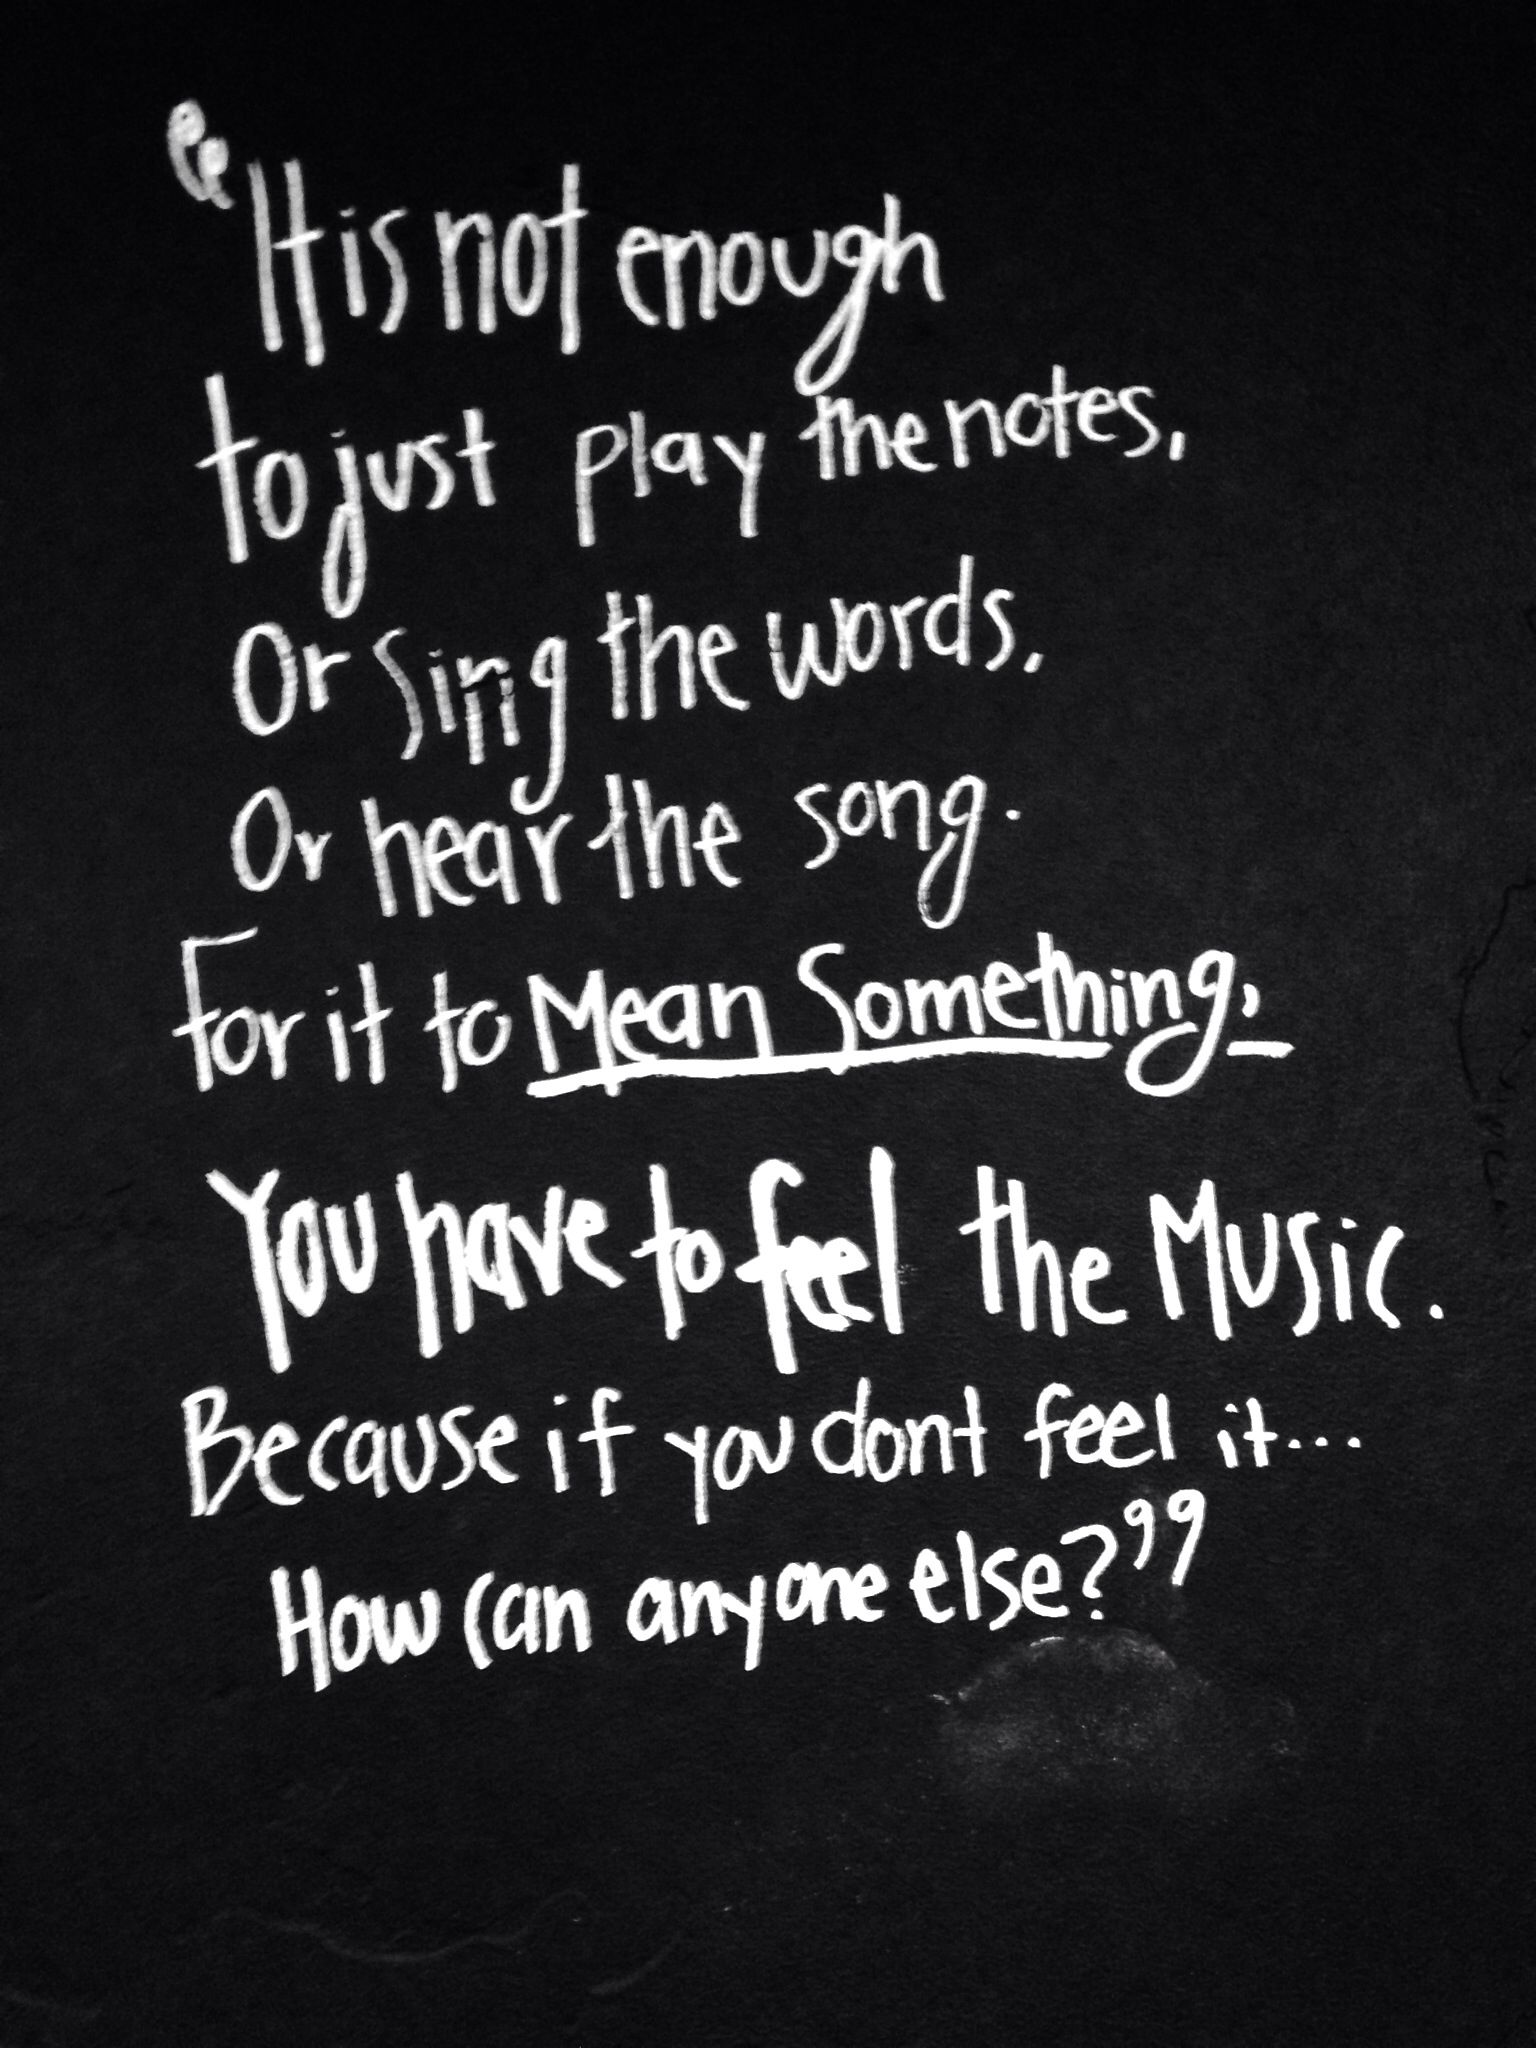 To truly enjoy & appreciate all of the art of music, each